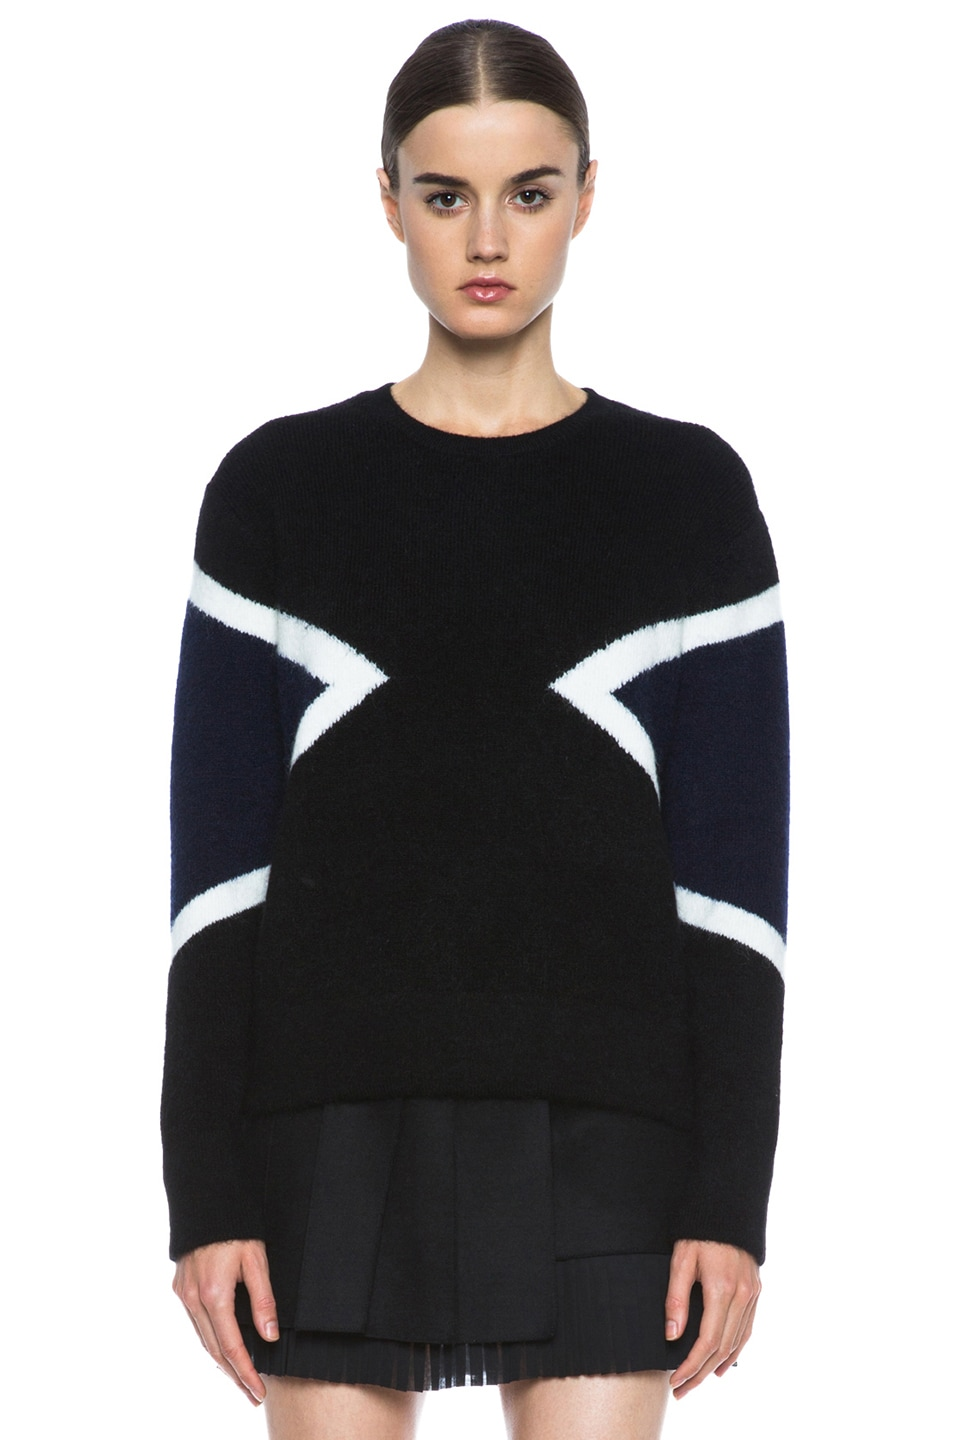 Image 1 of Neil Barrett Modernist Mohair-Blend Crew Neck Knit in Black & Navy